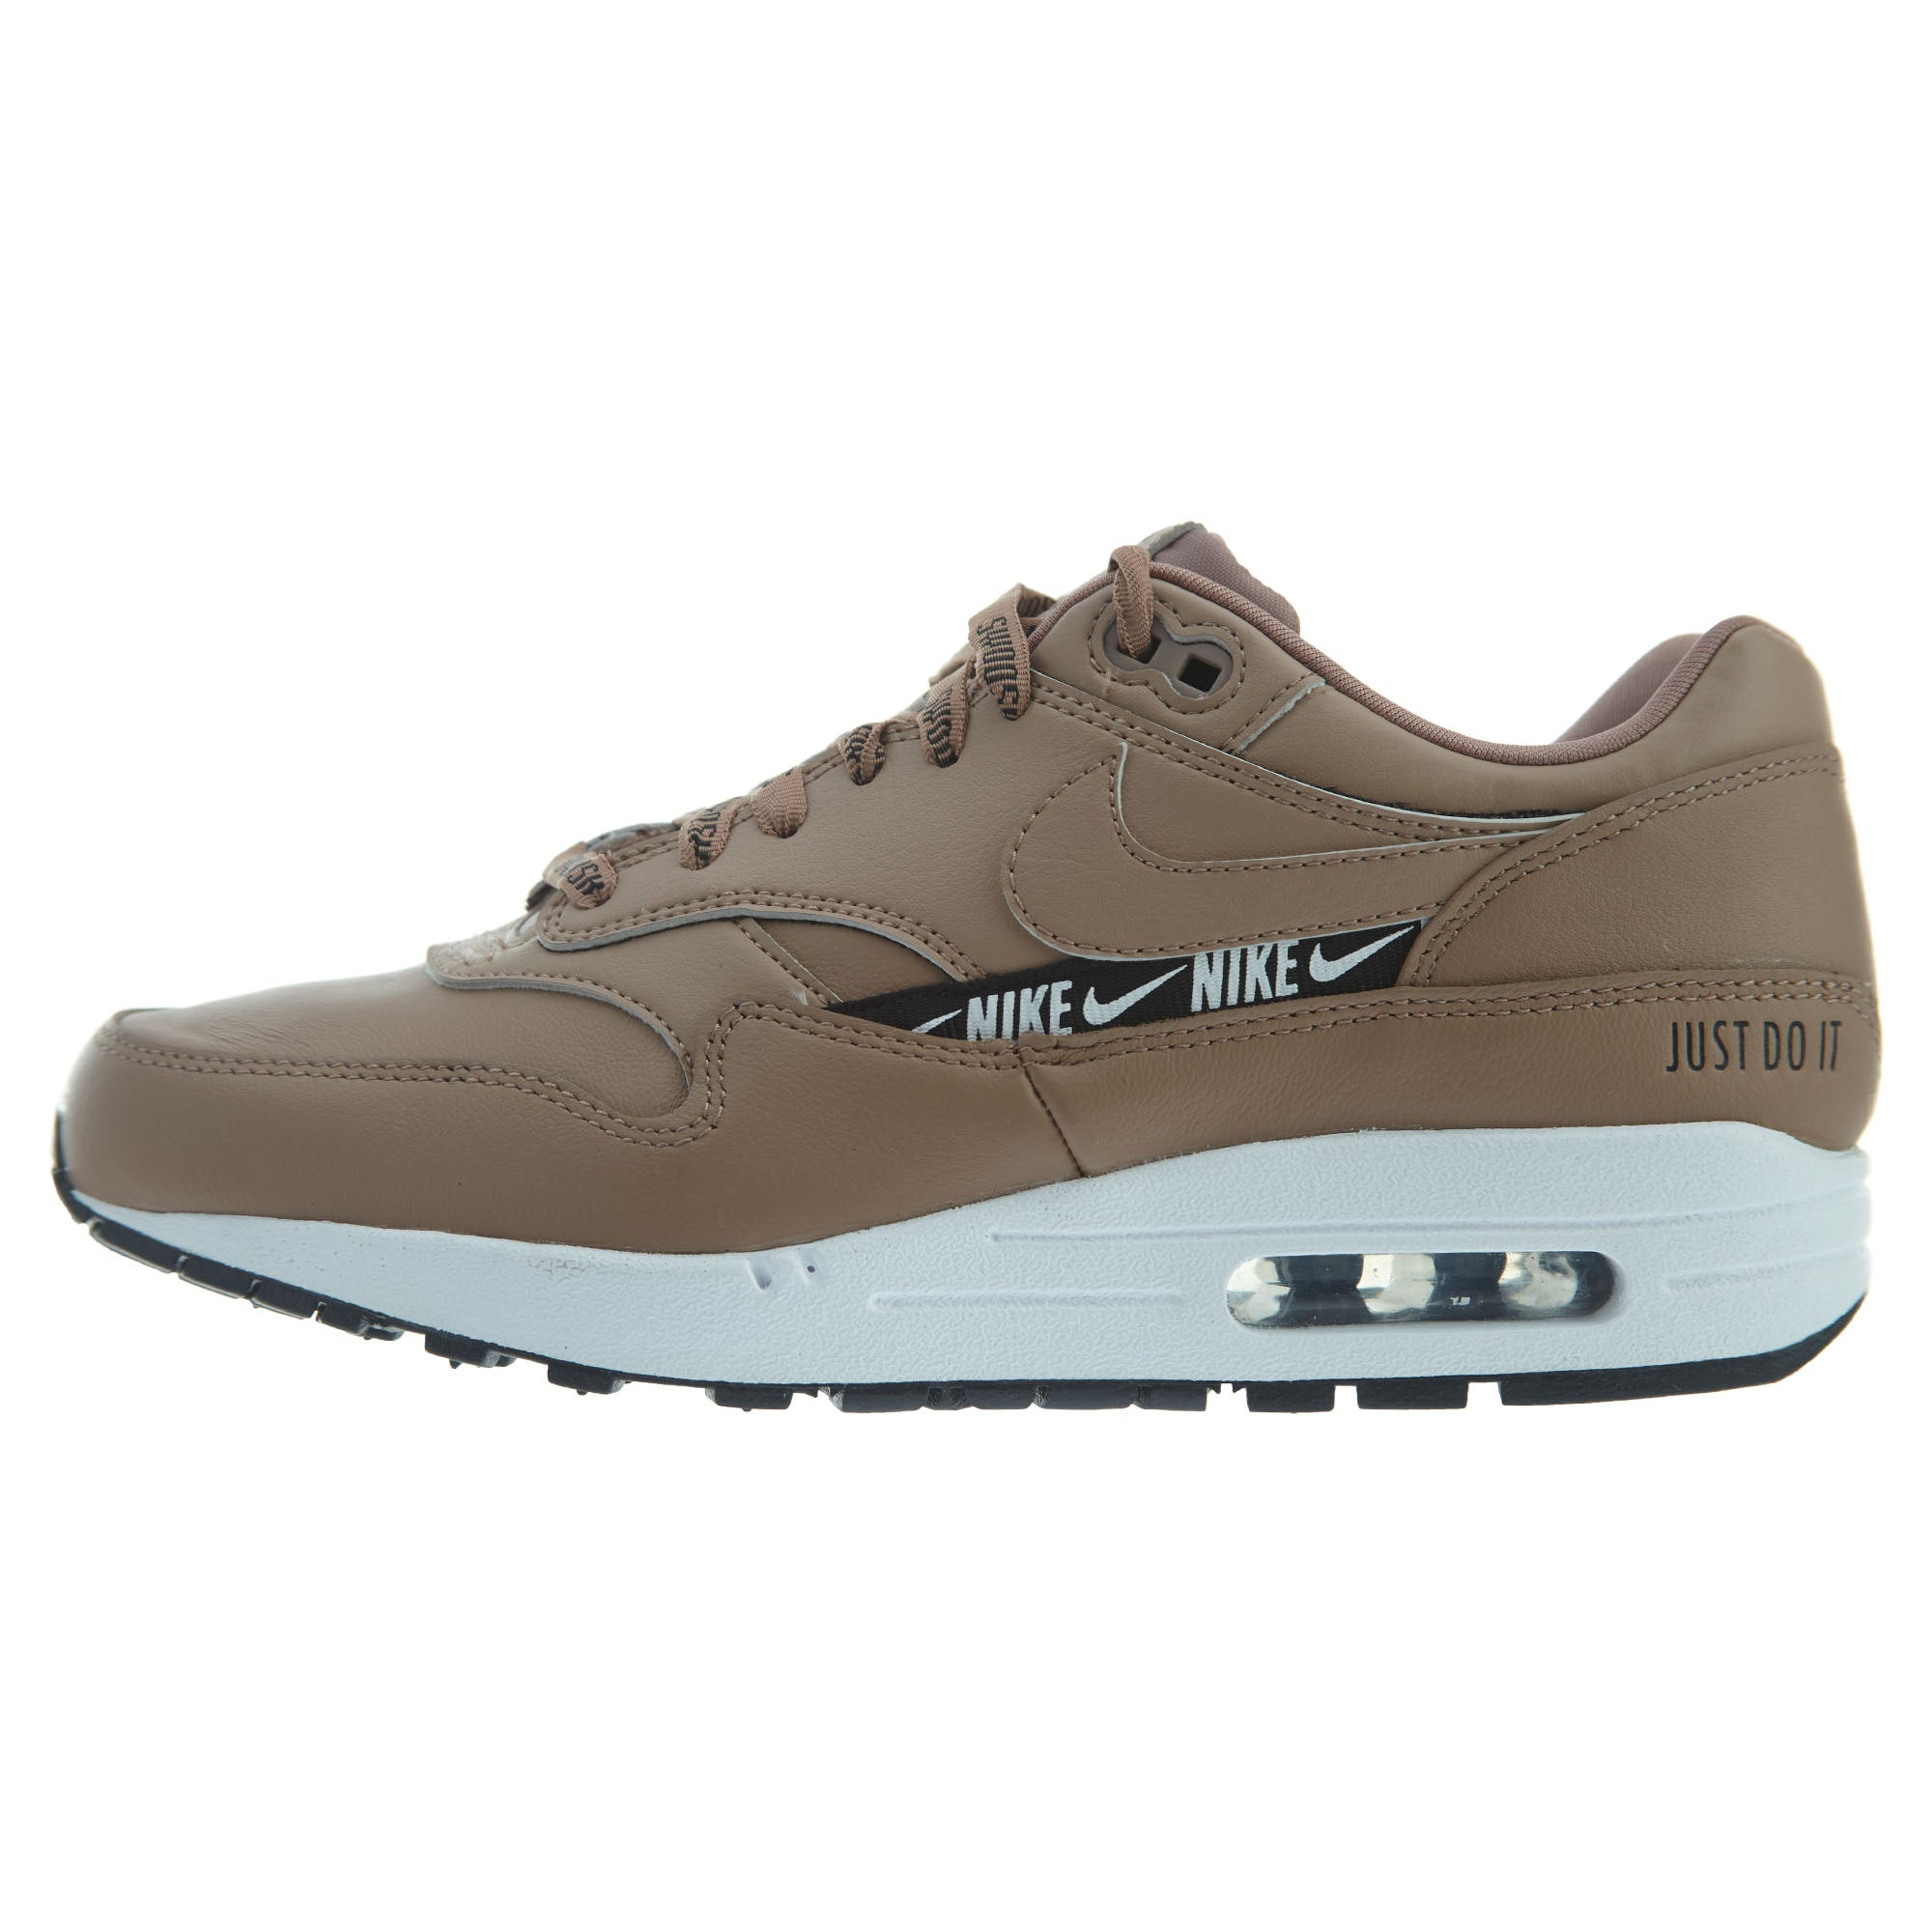 Nike Wmns Air Max 1 SE Overbranded 881101 103årgymnastikskorSkorFootish 881101 103årgymnastikskorSkor Footish